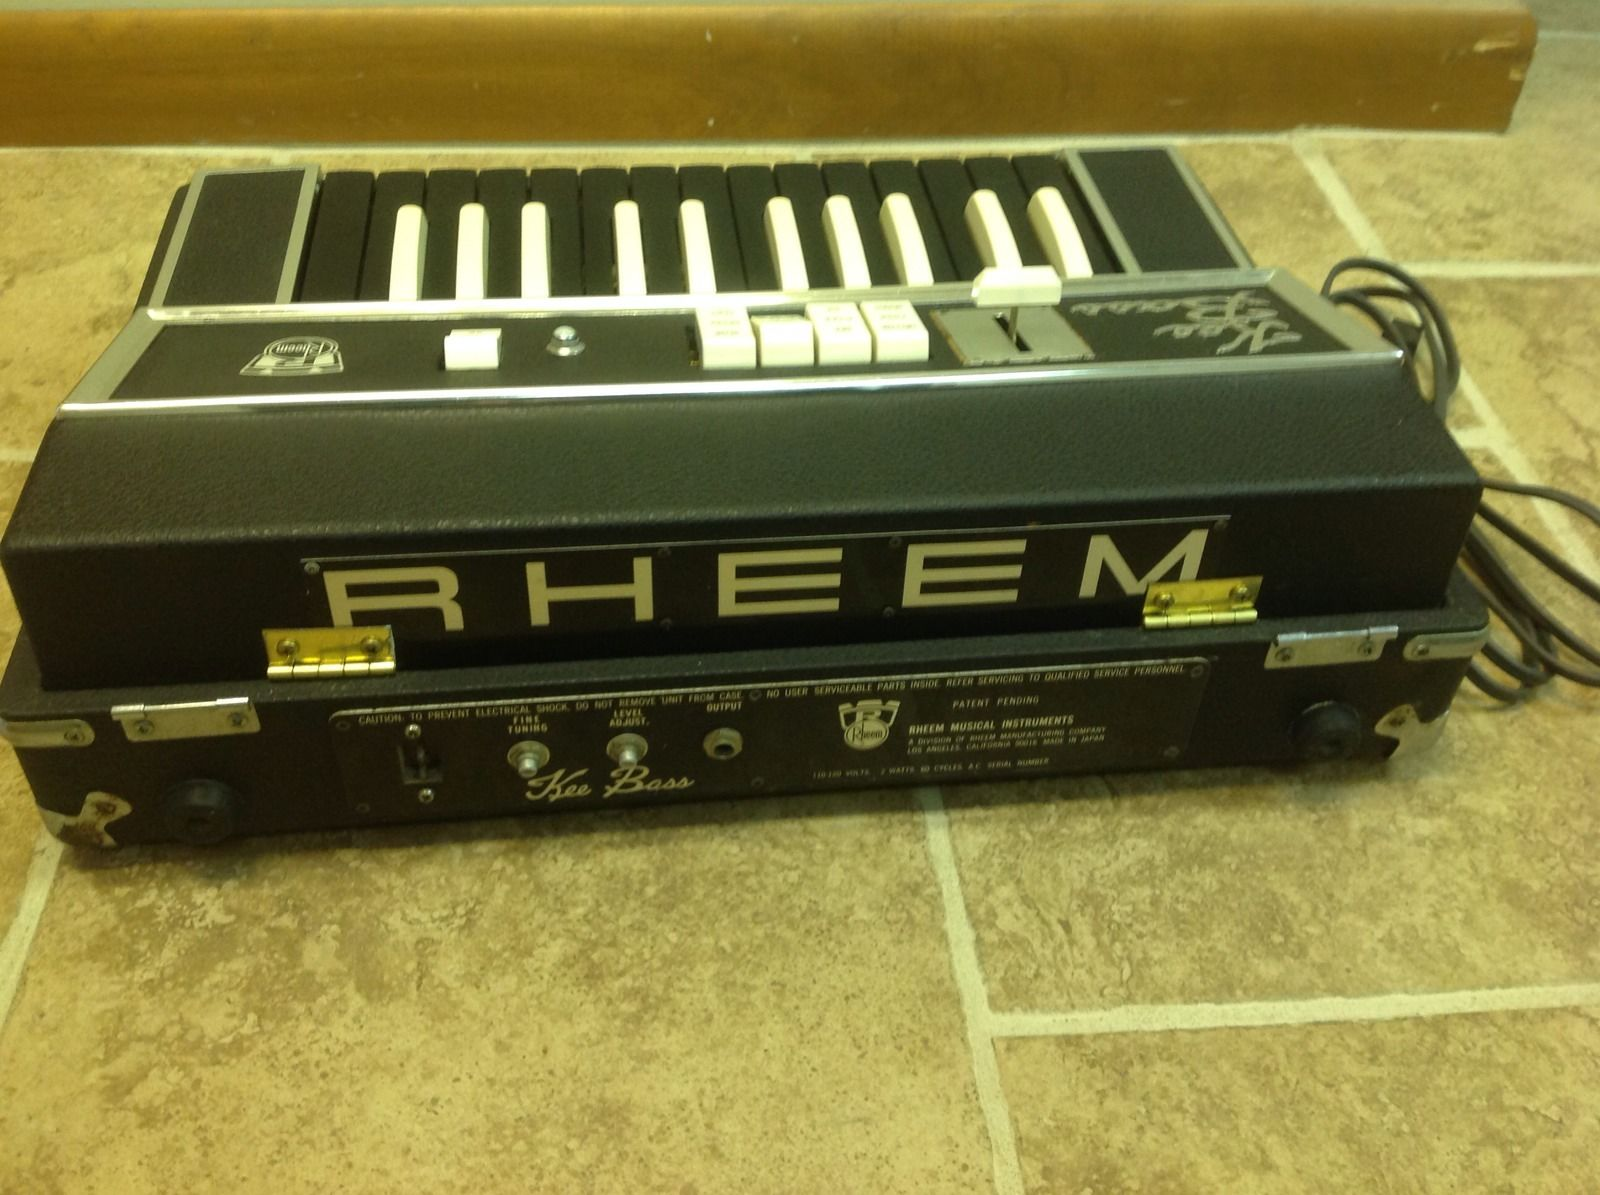 Matrixsynth vintage black rheem kee bass monophonic for Classic house organ bass